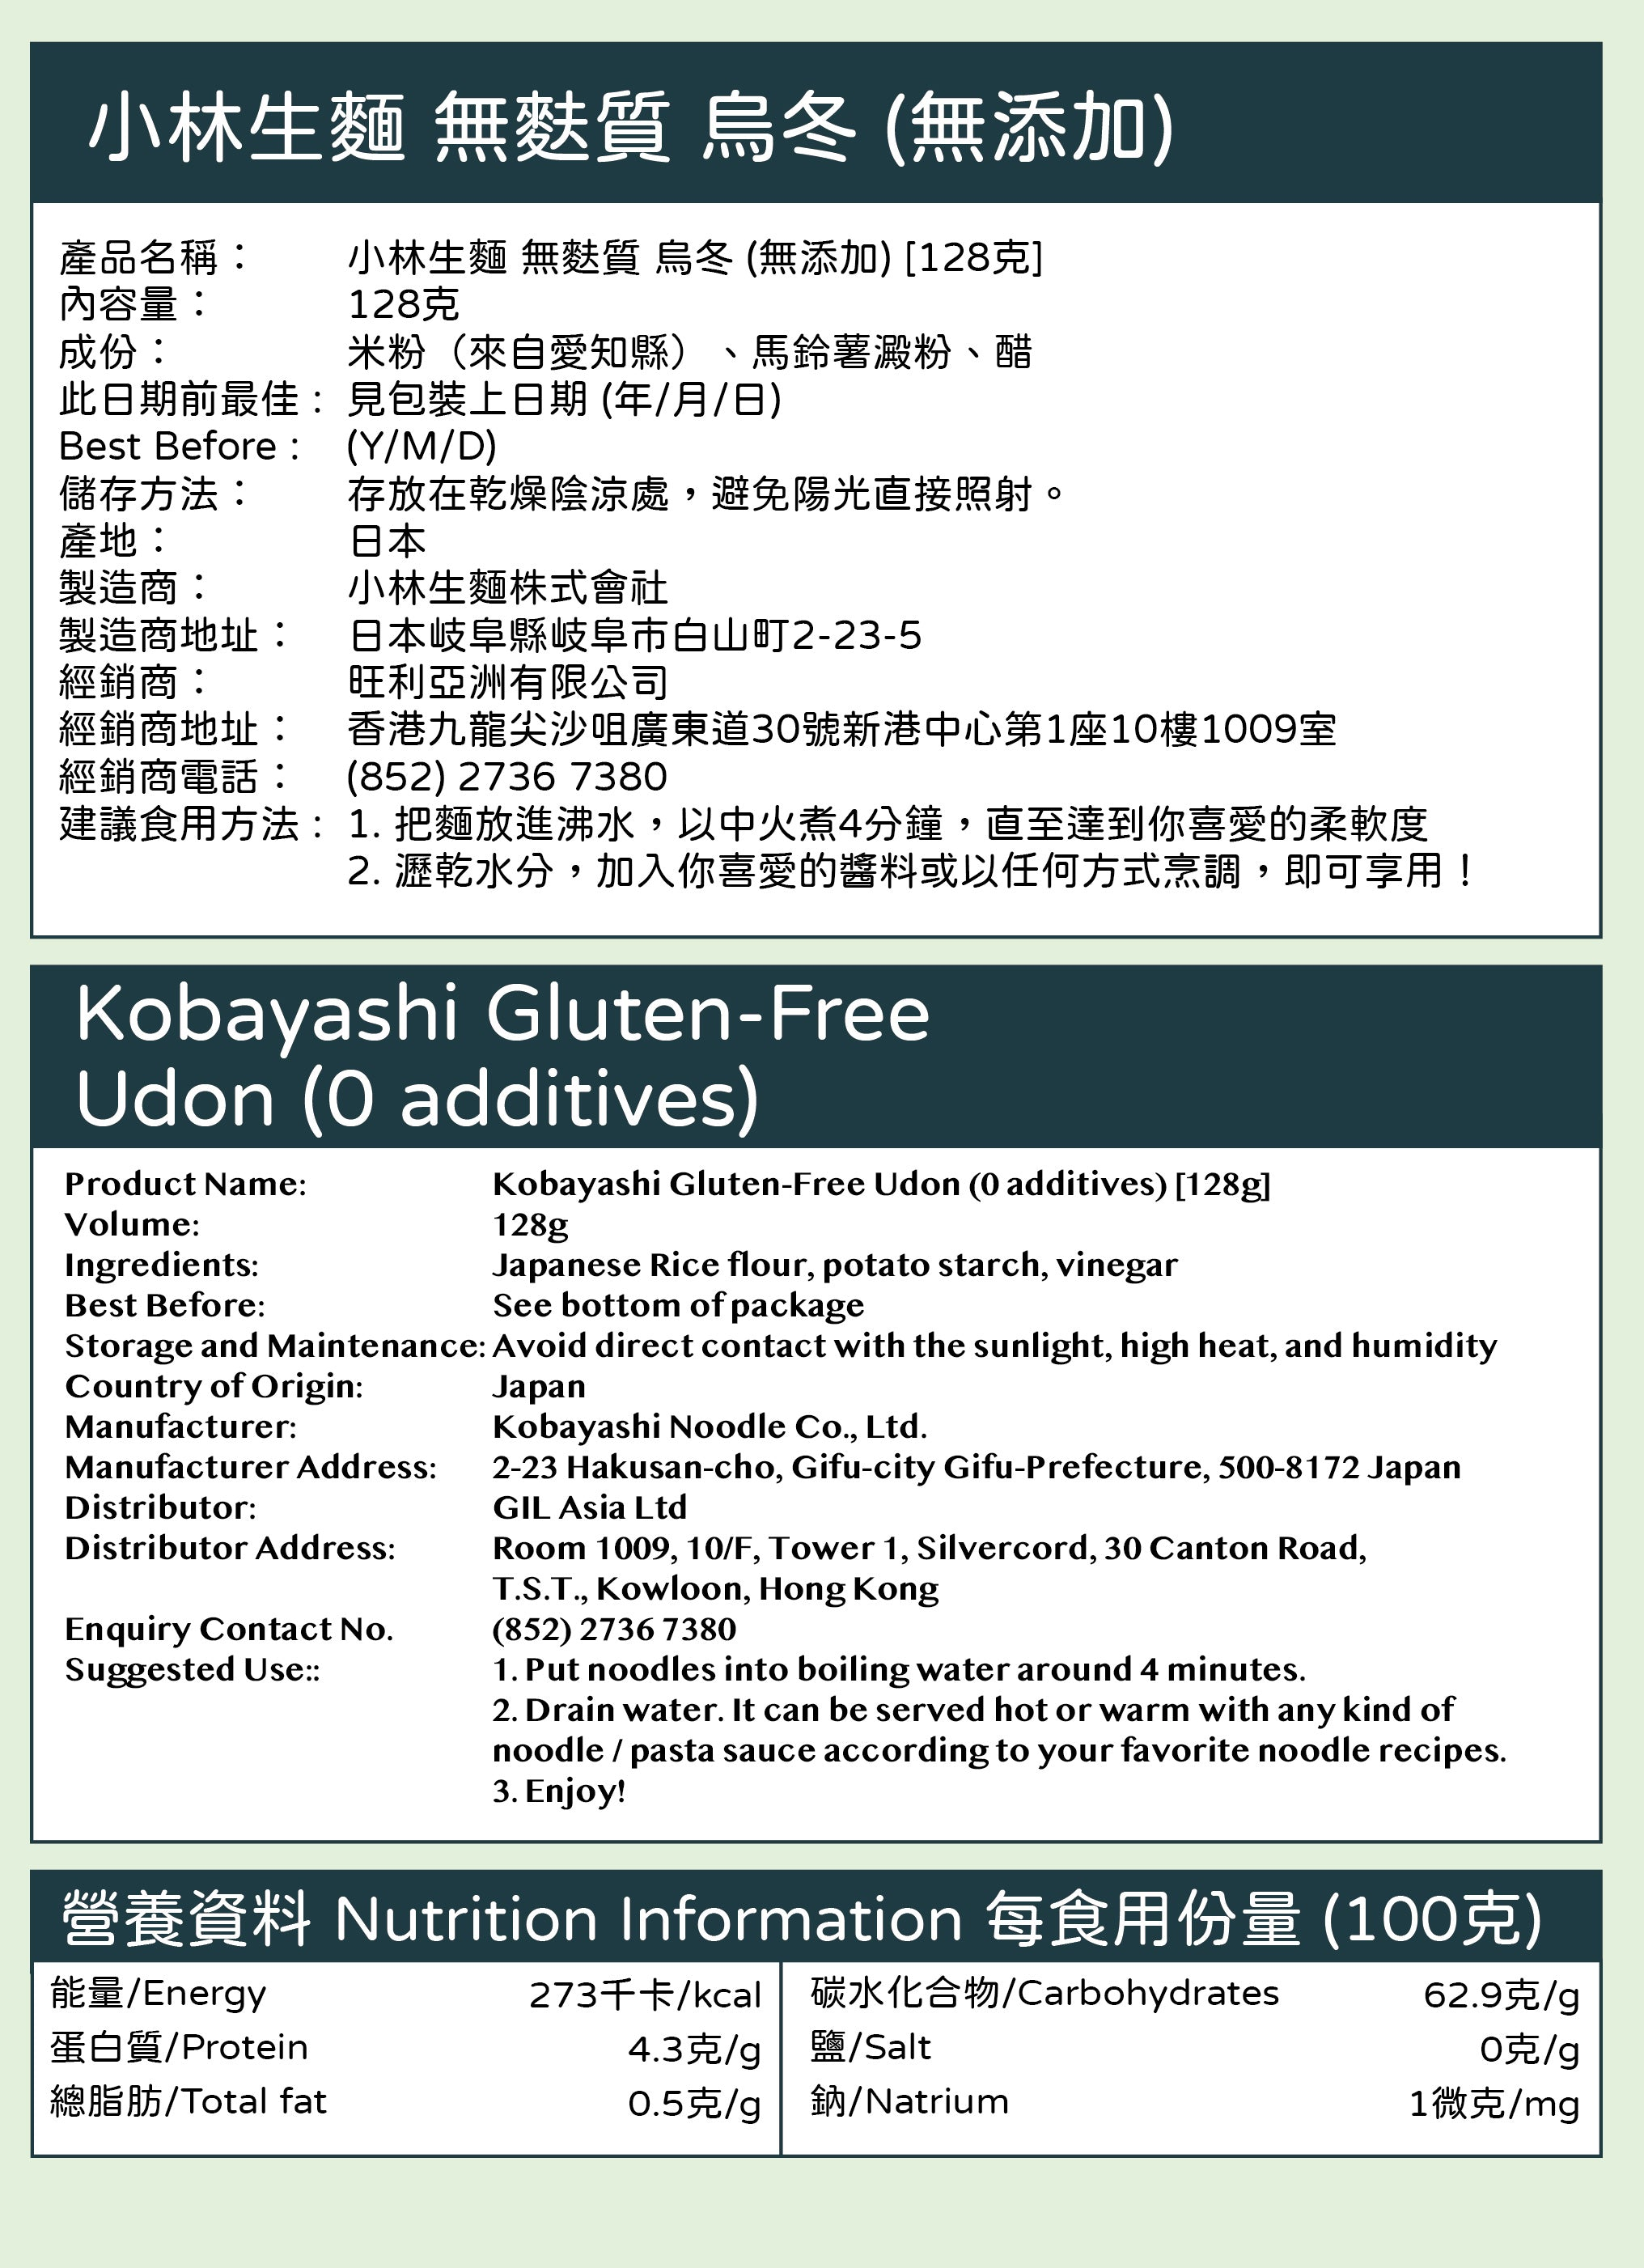 Kobayashi Gluten-Free Udon (0 additives) [128g]